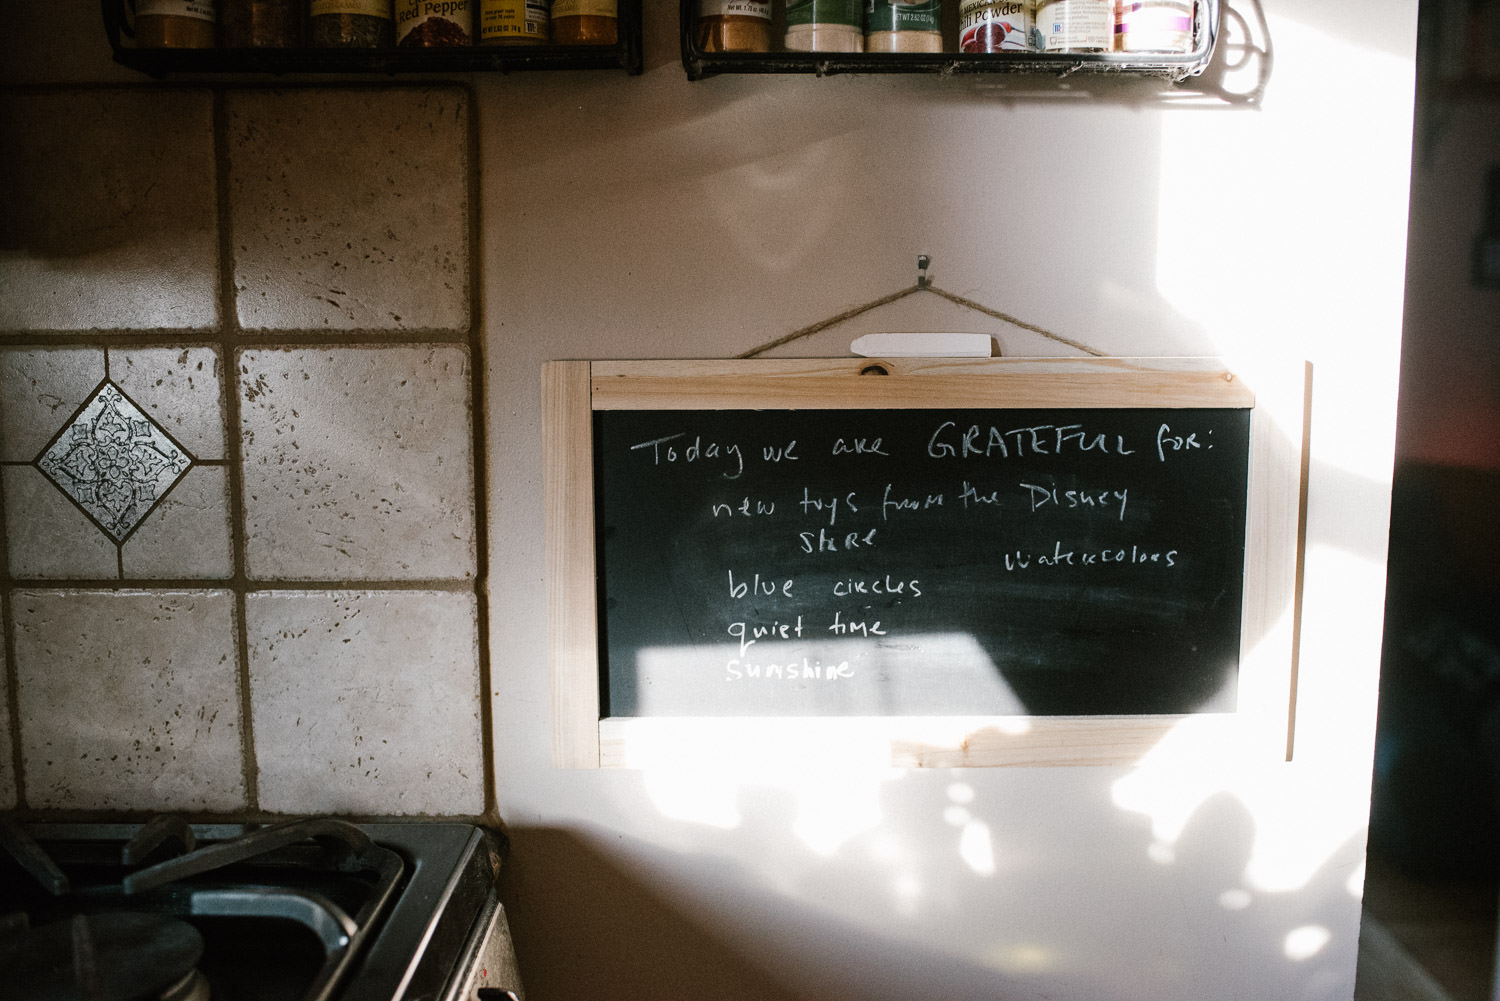 A chalkboard with gratitudes hangs on the kitchen wall.